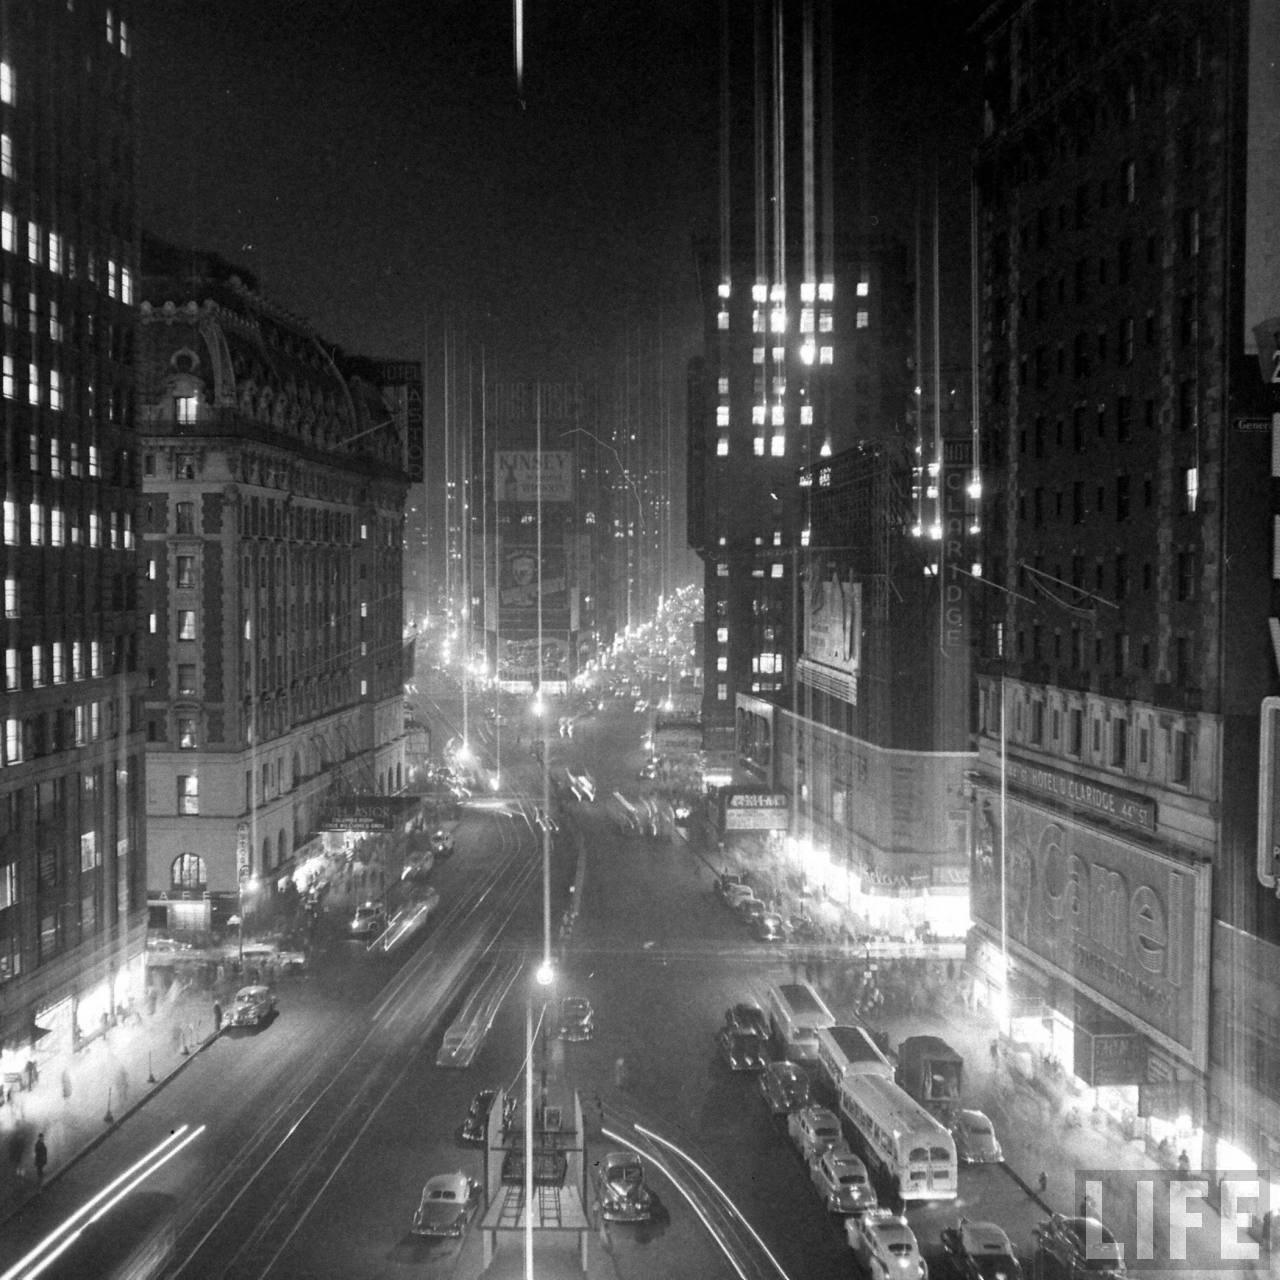 Brownout Time Square.November 1946.© Time Inc.Herbert Gehr - See more at: http://kcmeesha.com/2011/11/29/old-photos-times-square-through-the-years/#sthash.ru9W0F9h.dpuf